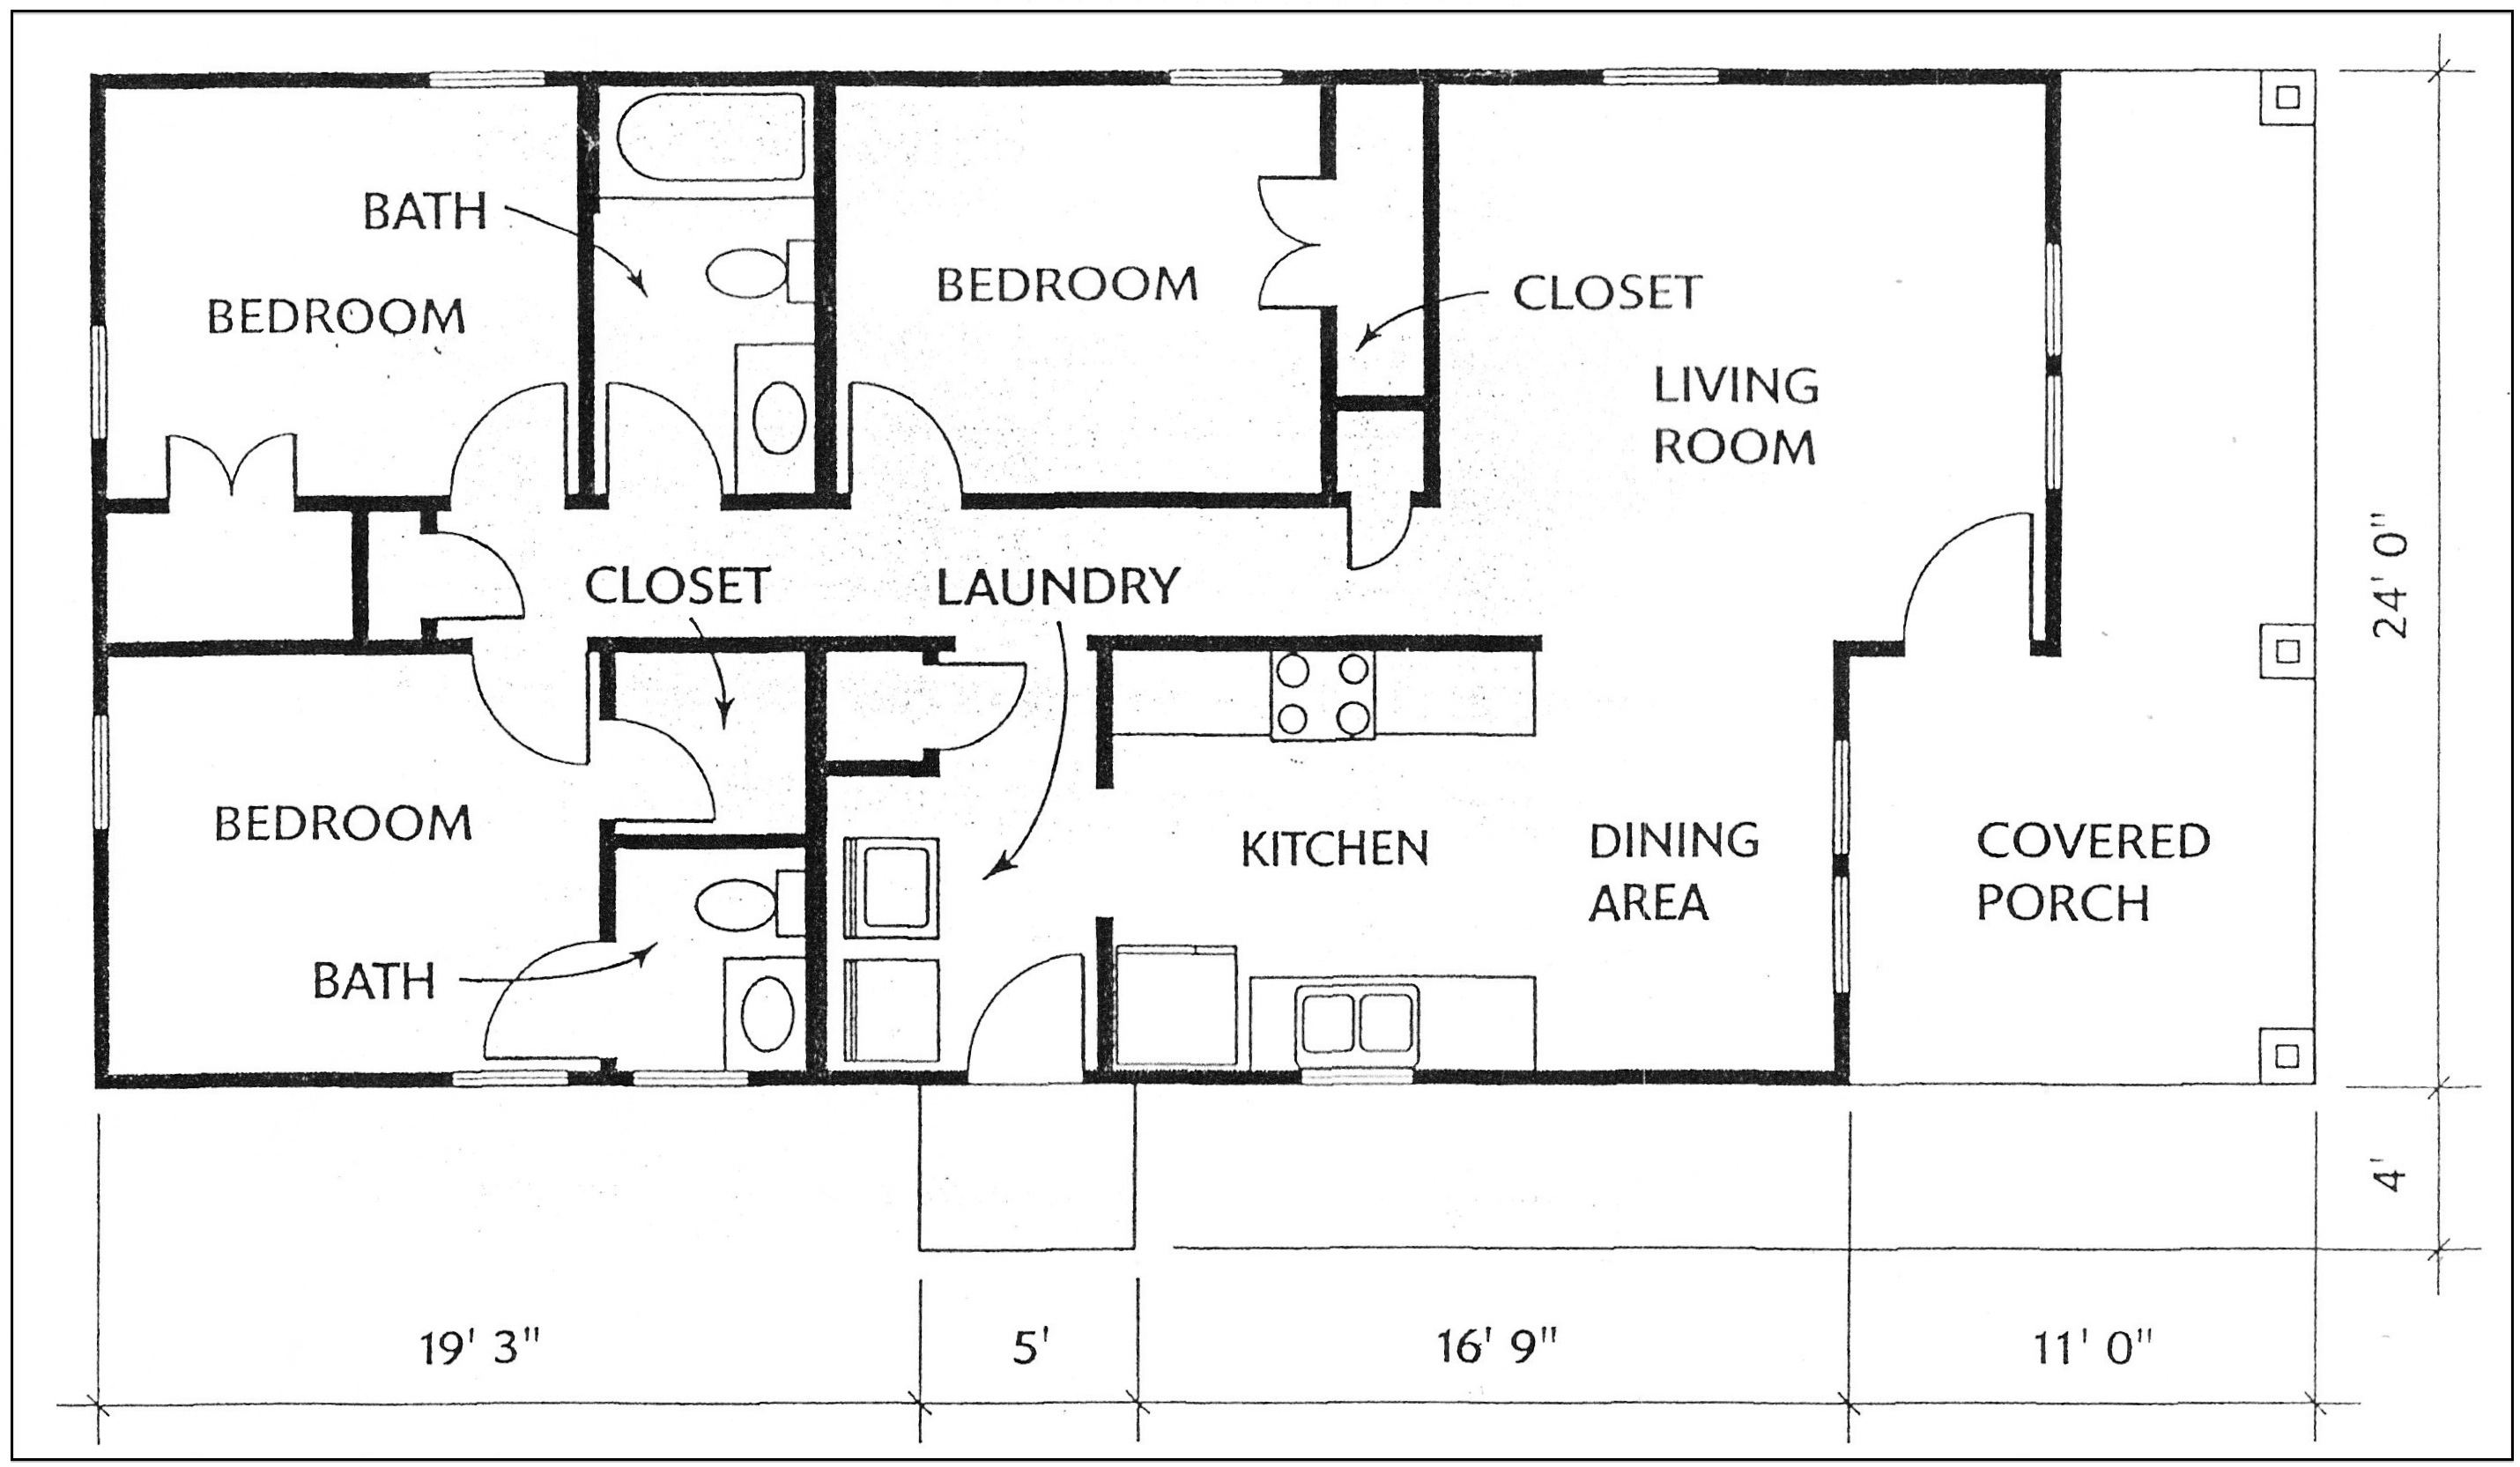 3 bedroom log cabin kits 3 bedroom log cabin floor plans for 3 bedroom log cabin plans